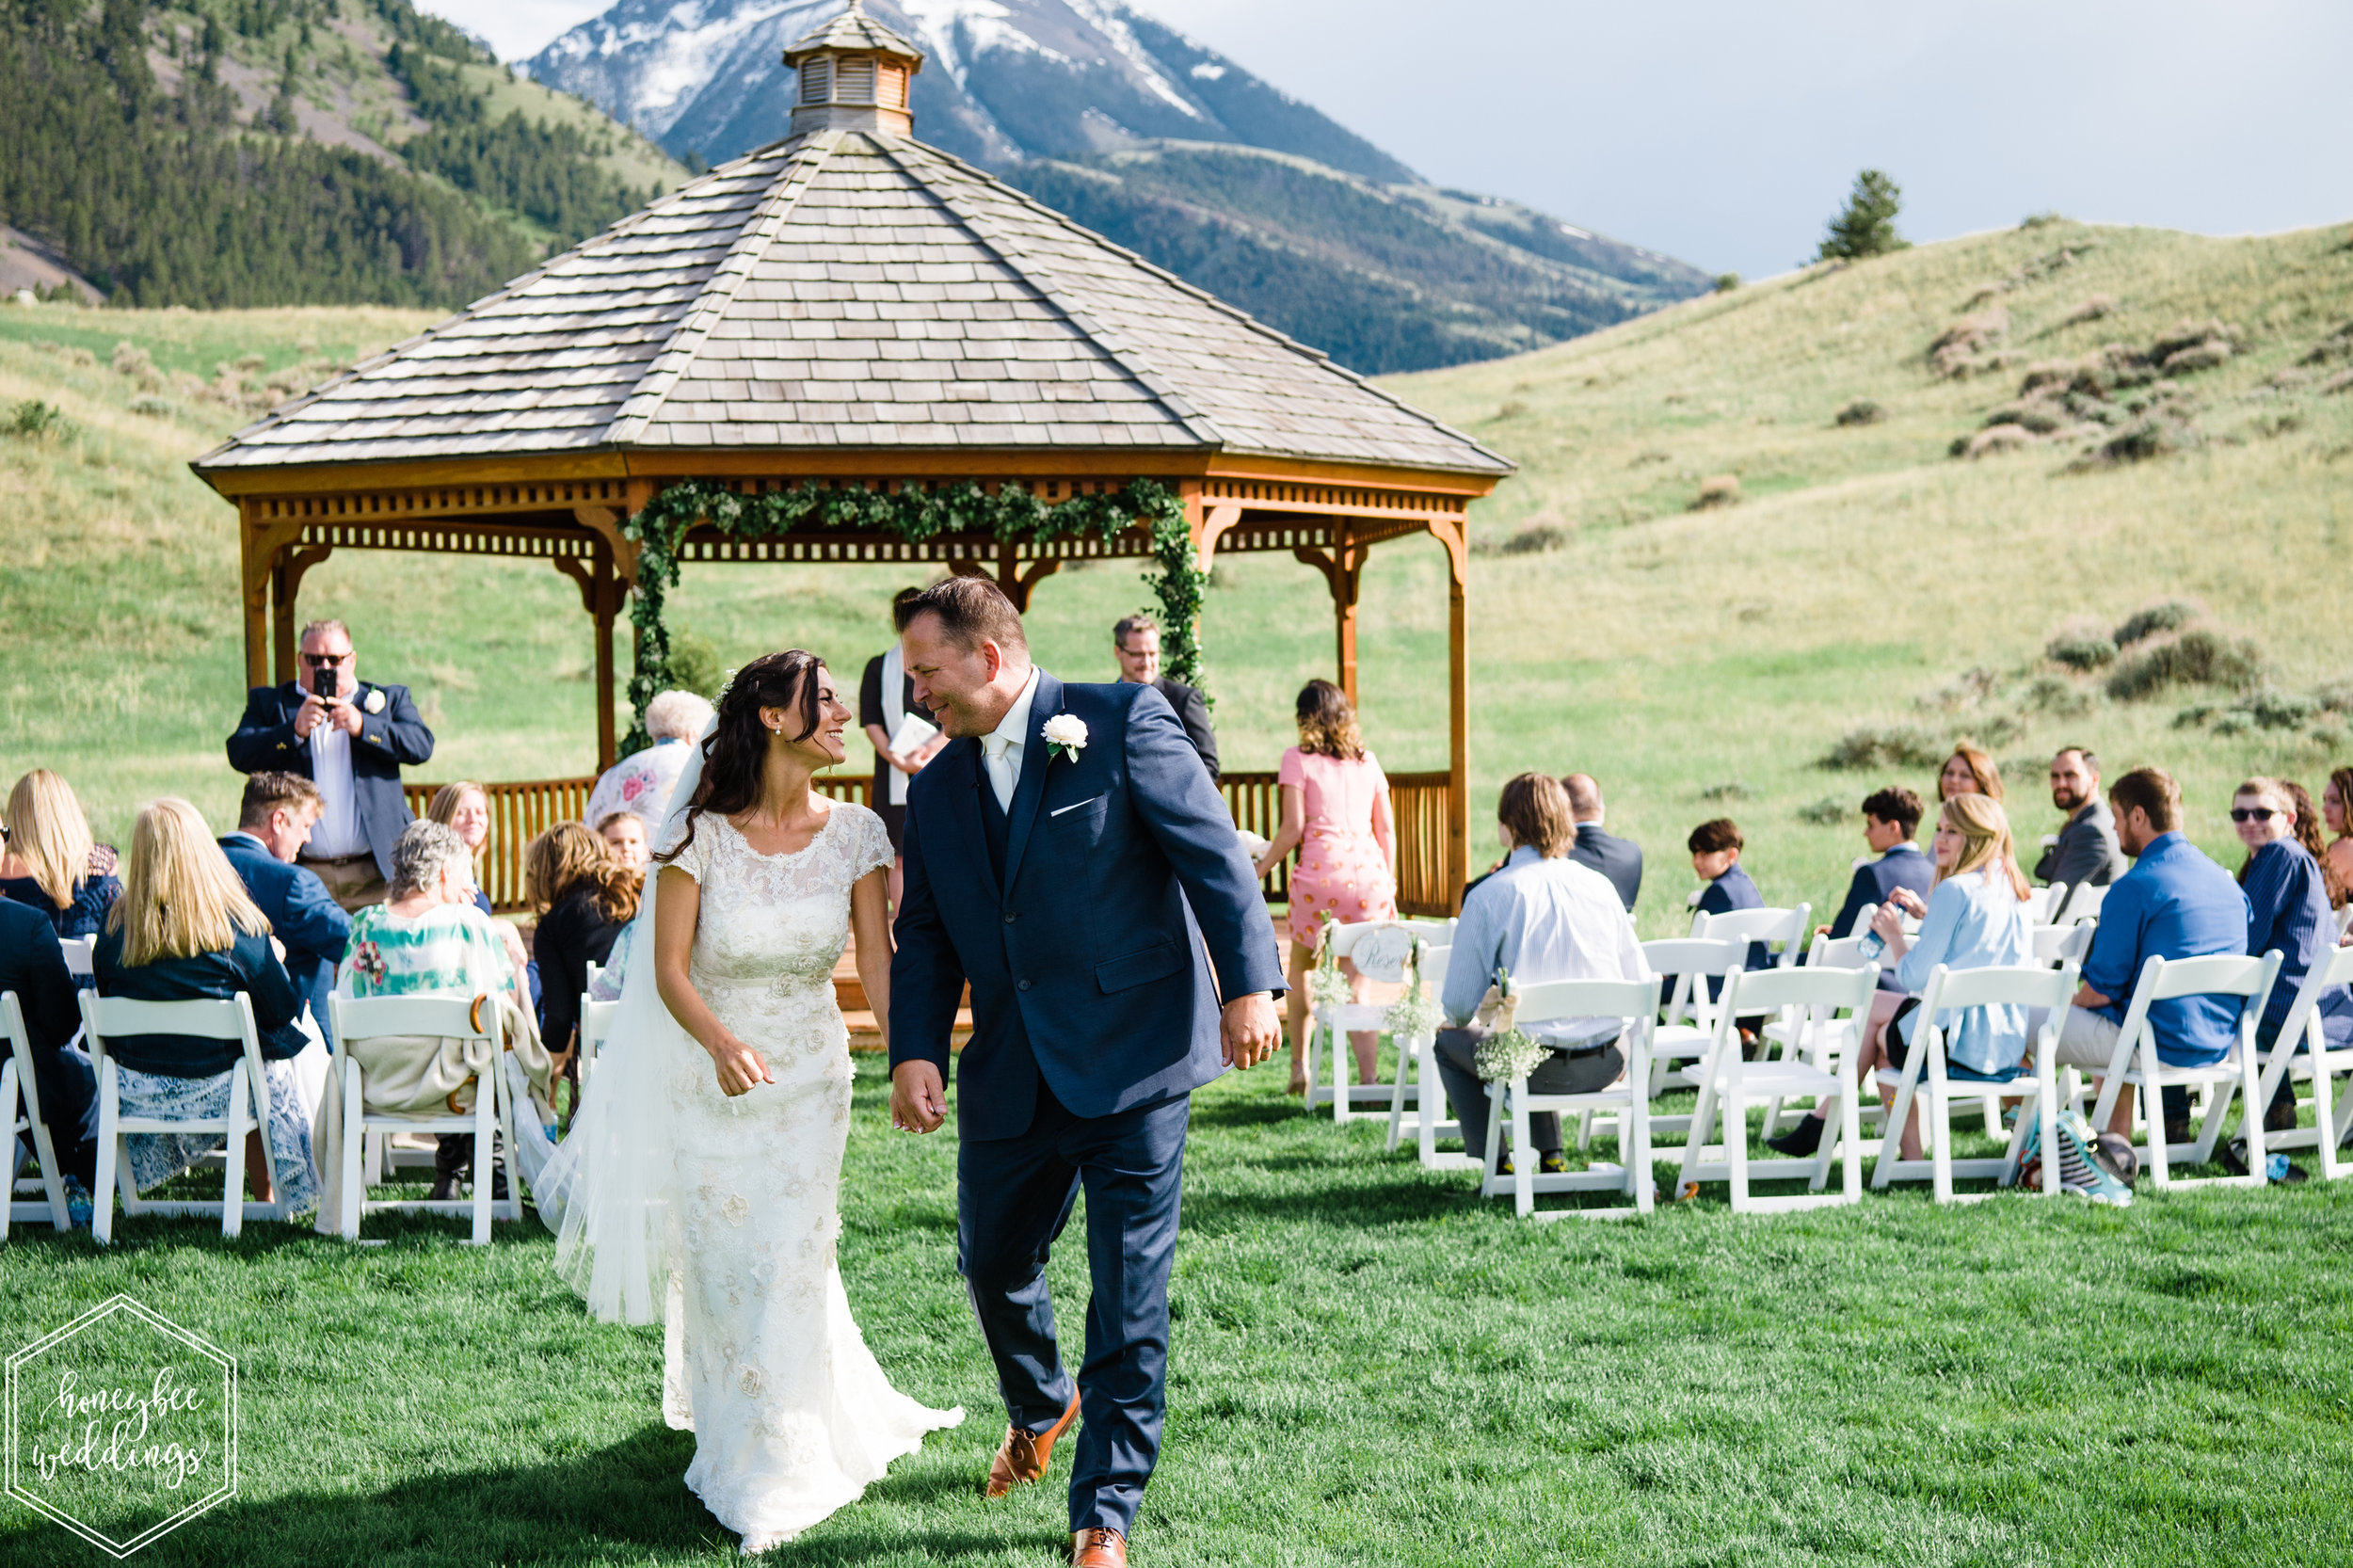 010Montana wedding photographer videographer_Chico hot springs wedding_Honeybee Weddings_Claudia & Bill_June 03, 2019-216.jpg